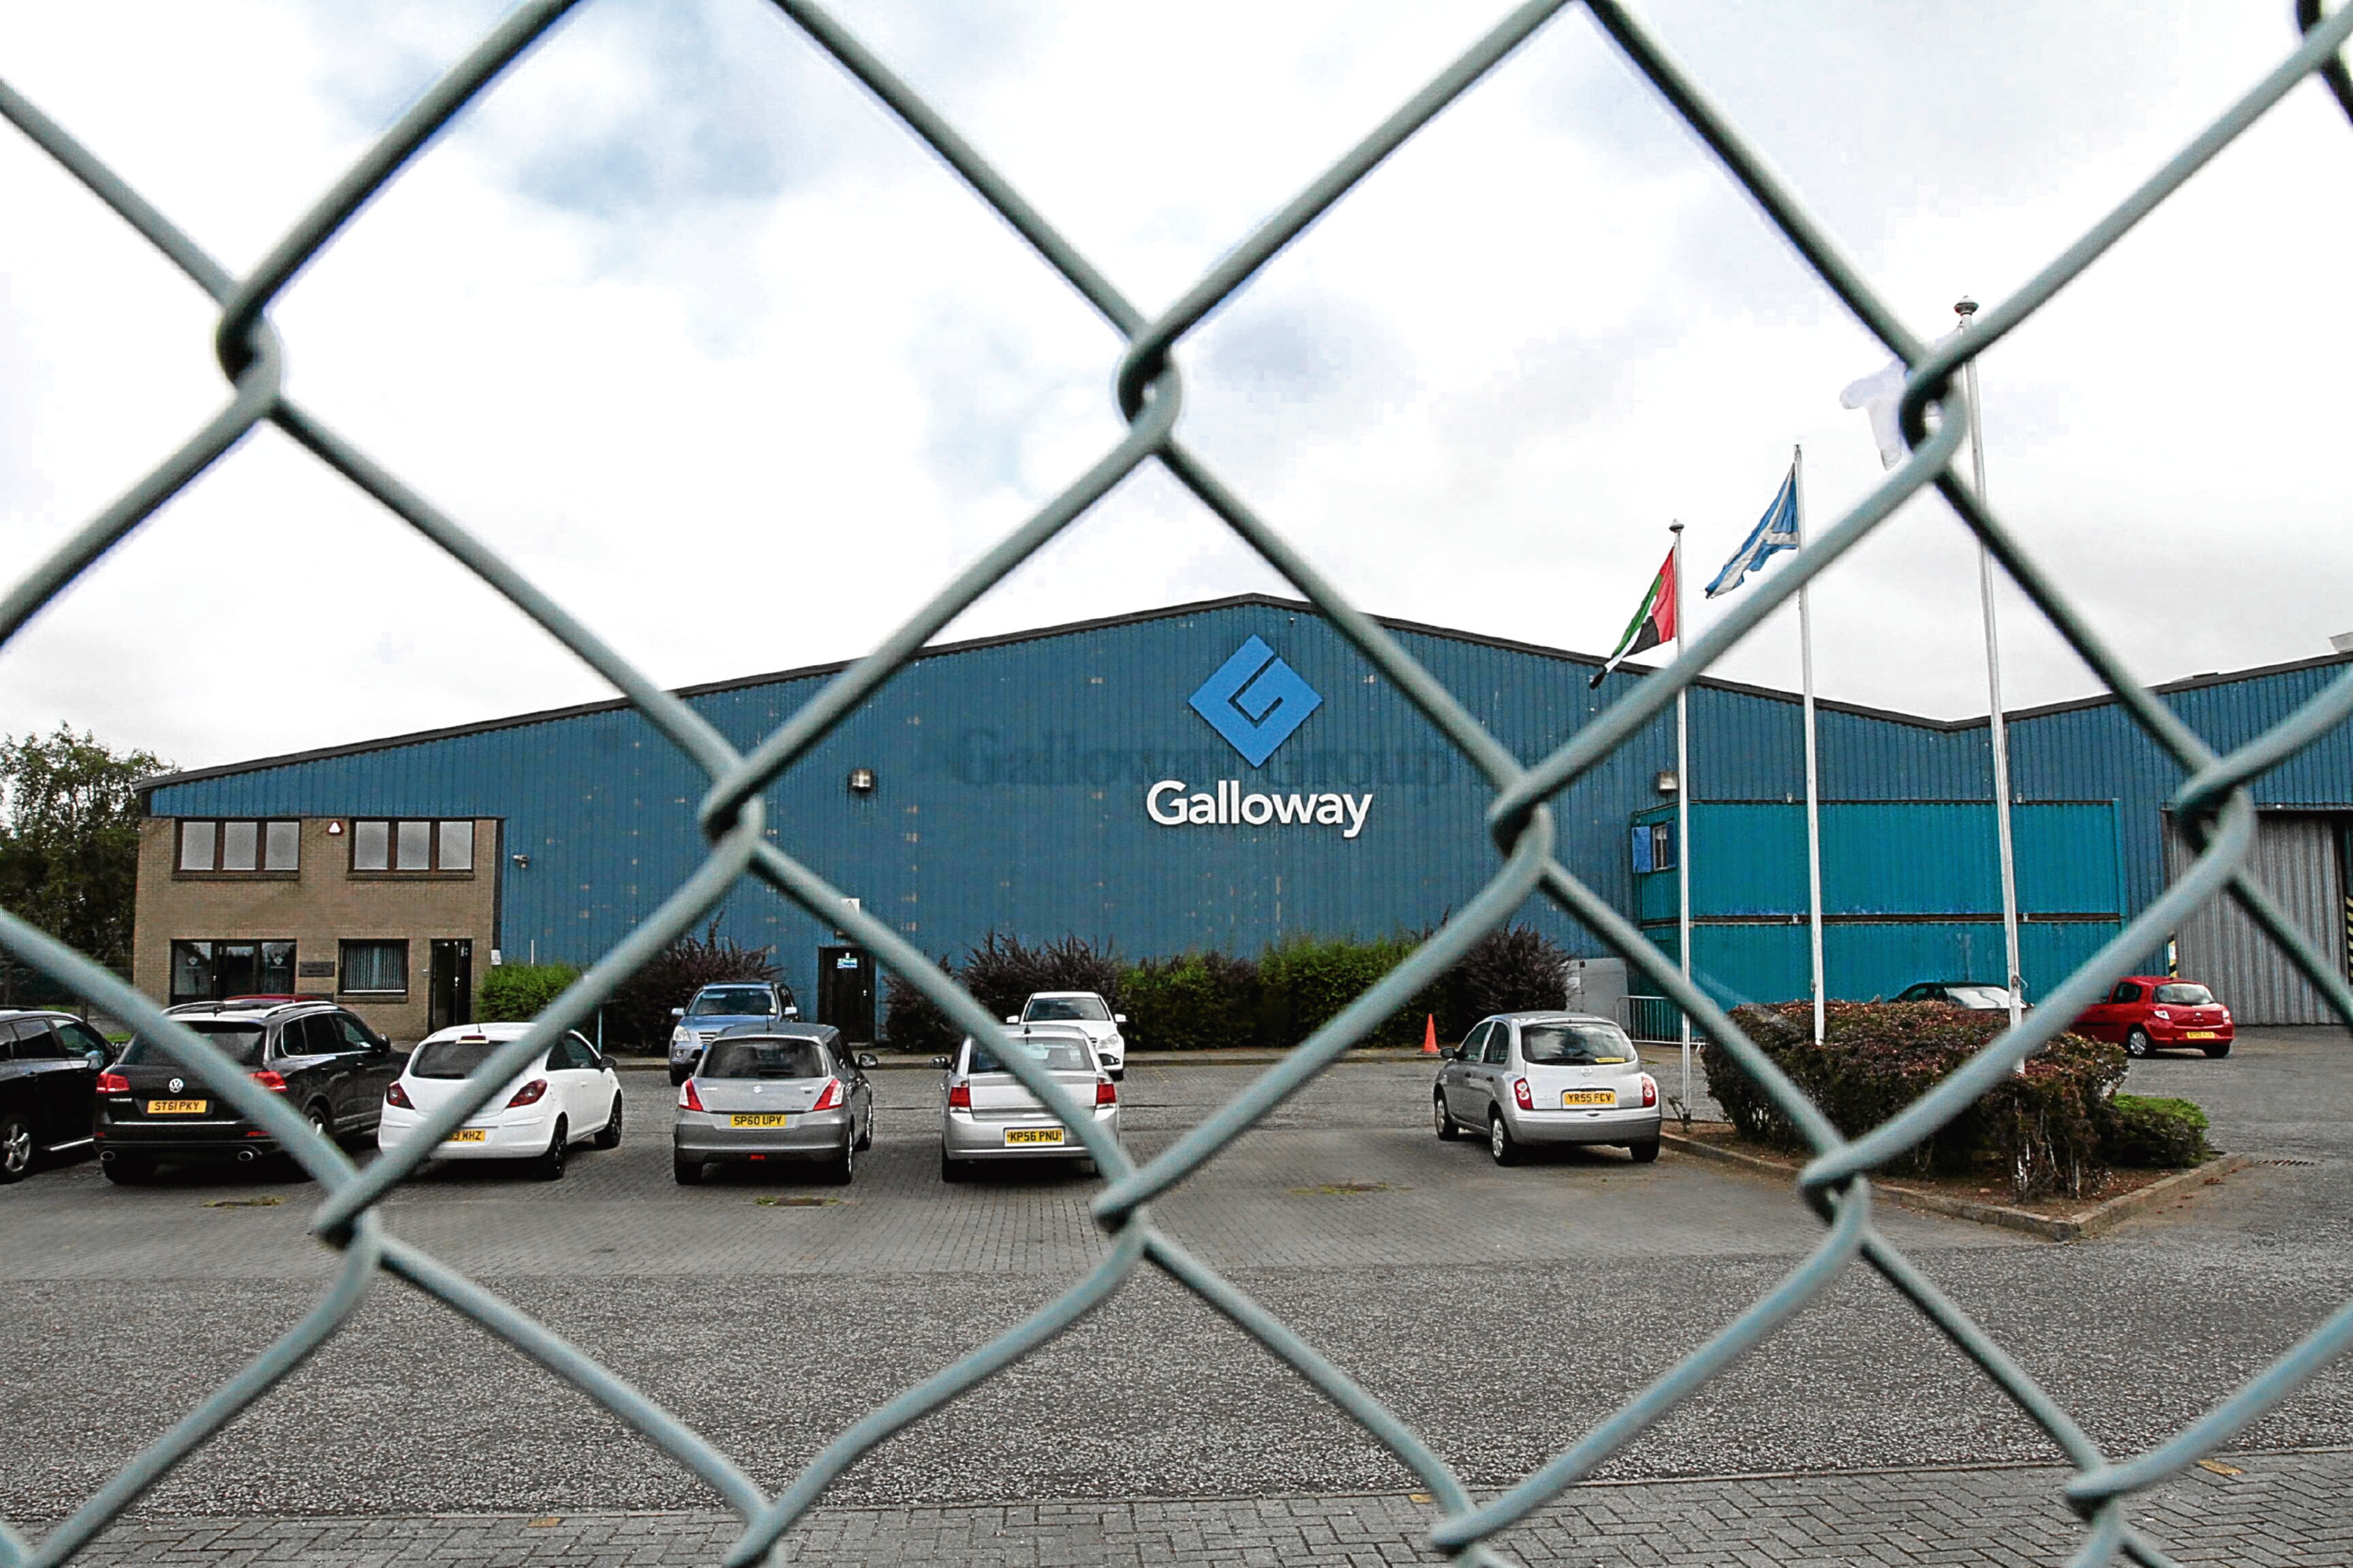 The Galloway Group is based in Dundee's Wester Gourdie industrial estate.